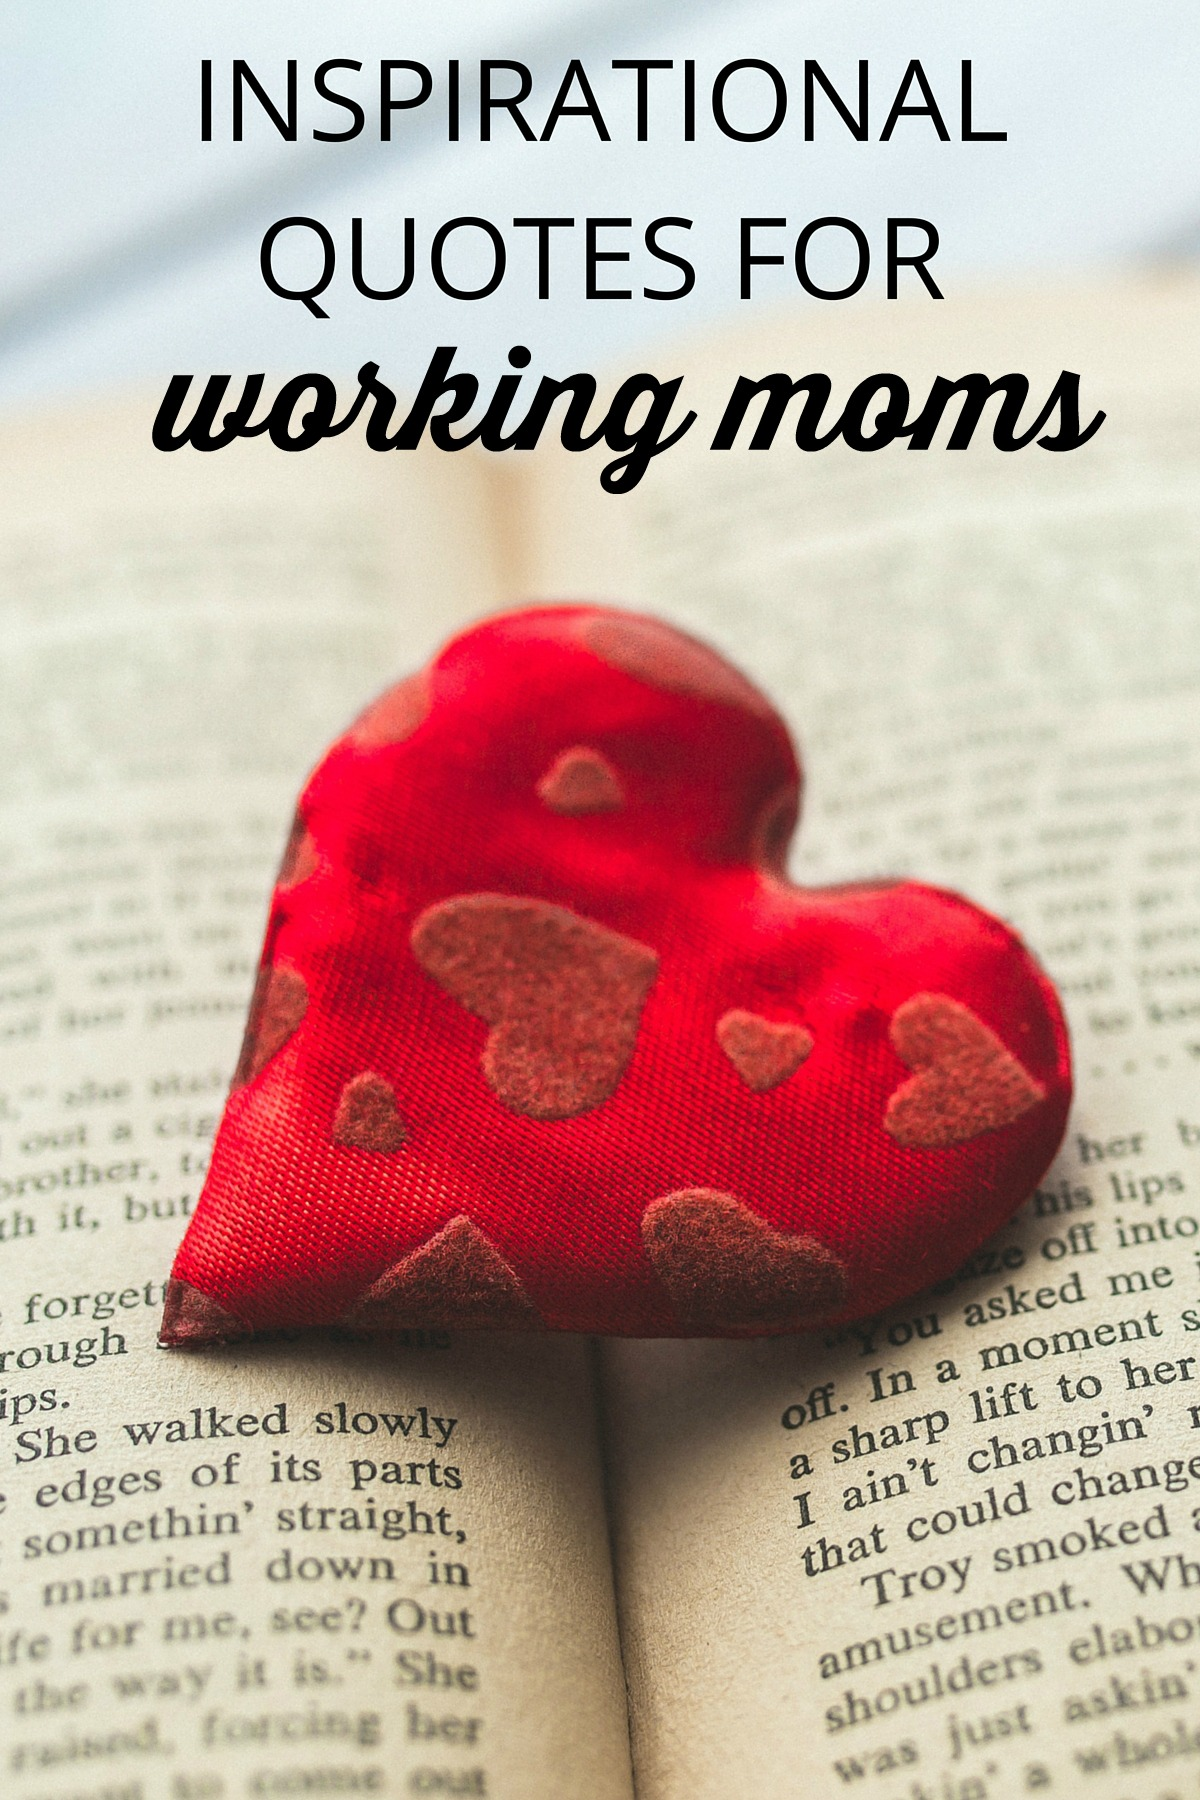 Inspirational Quotes For Mothers Inspirational Quotes For Working Moms